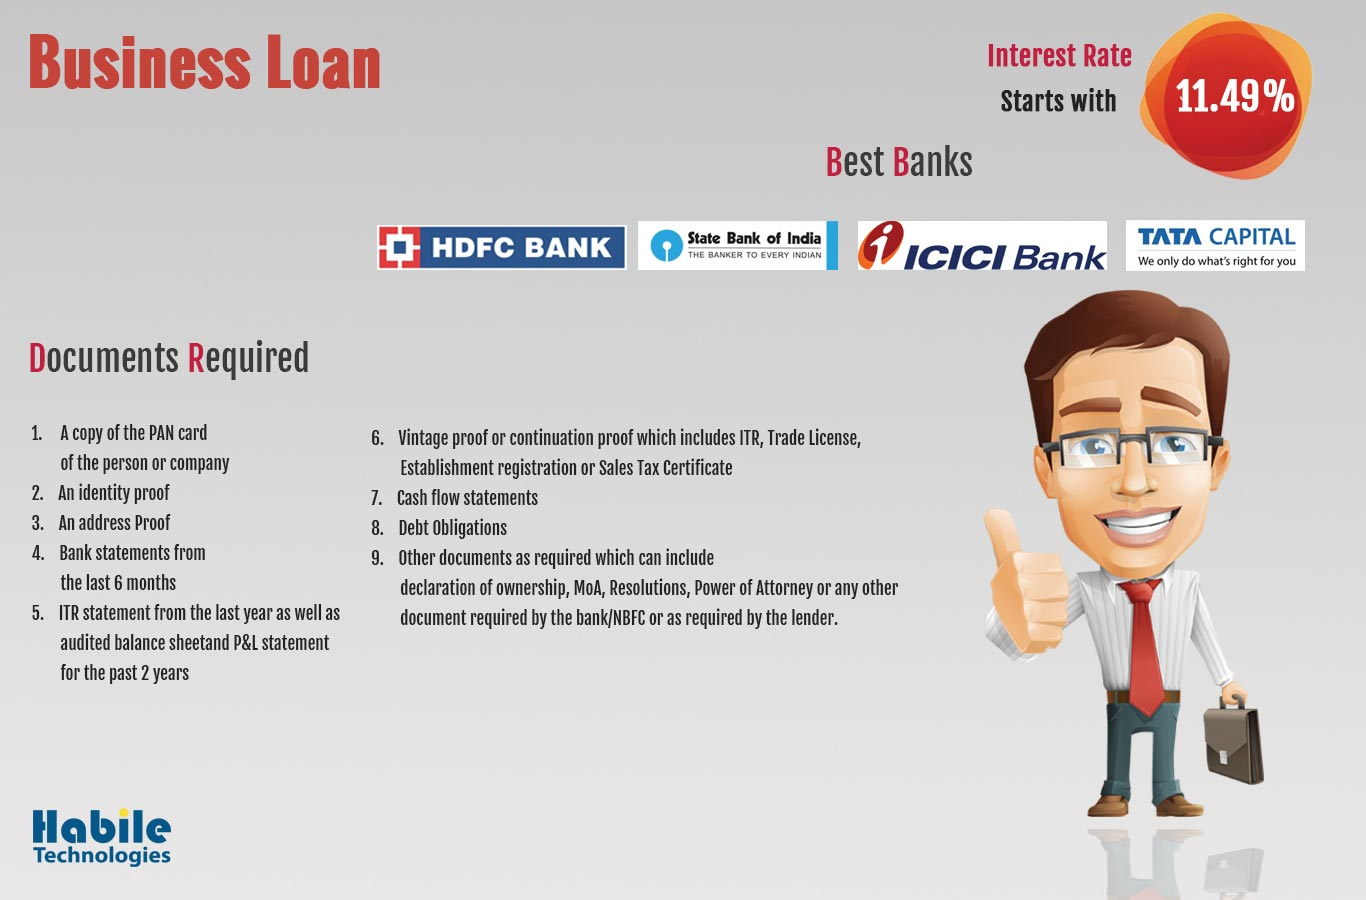 Documents required for Business Loan